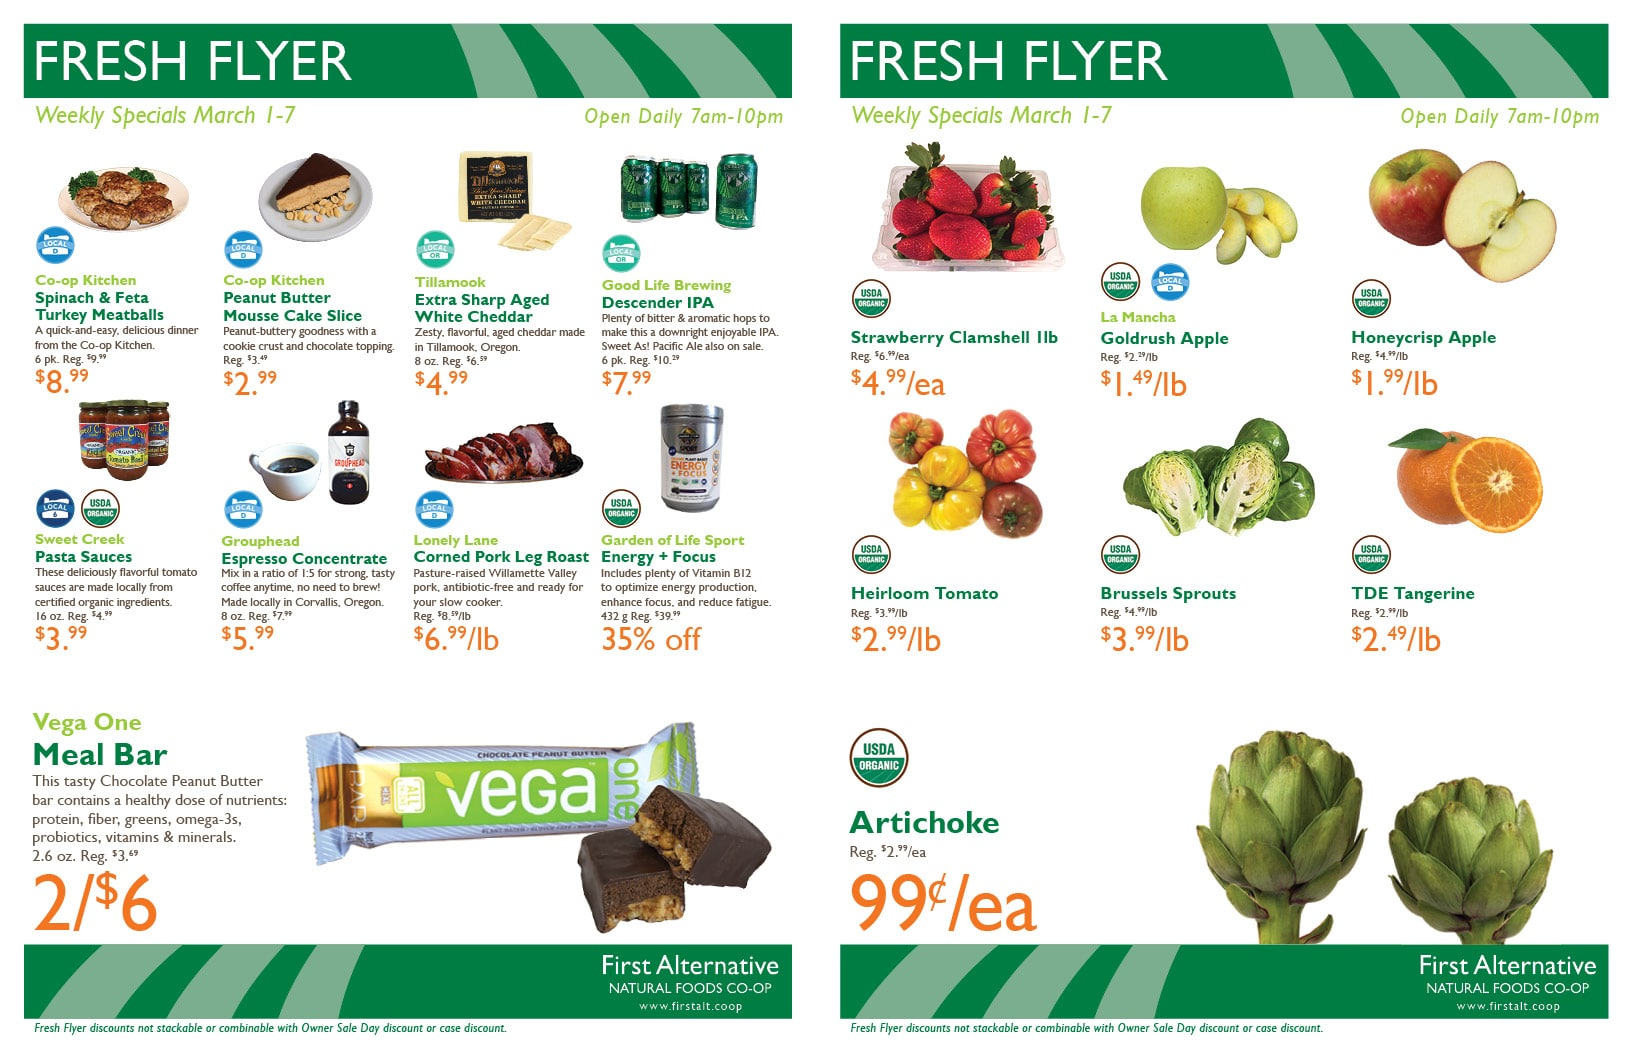 First Alternative Co-op Fresh Flyer Mar. 1-7